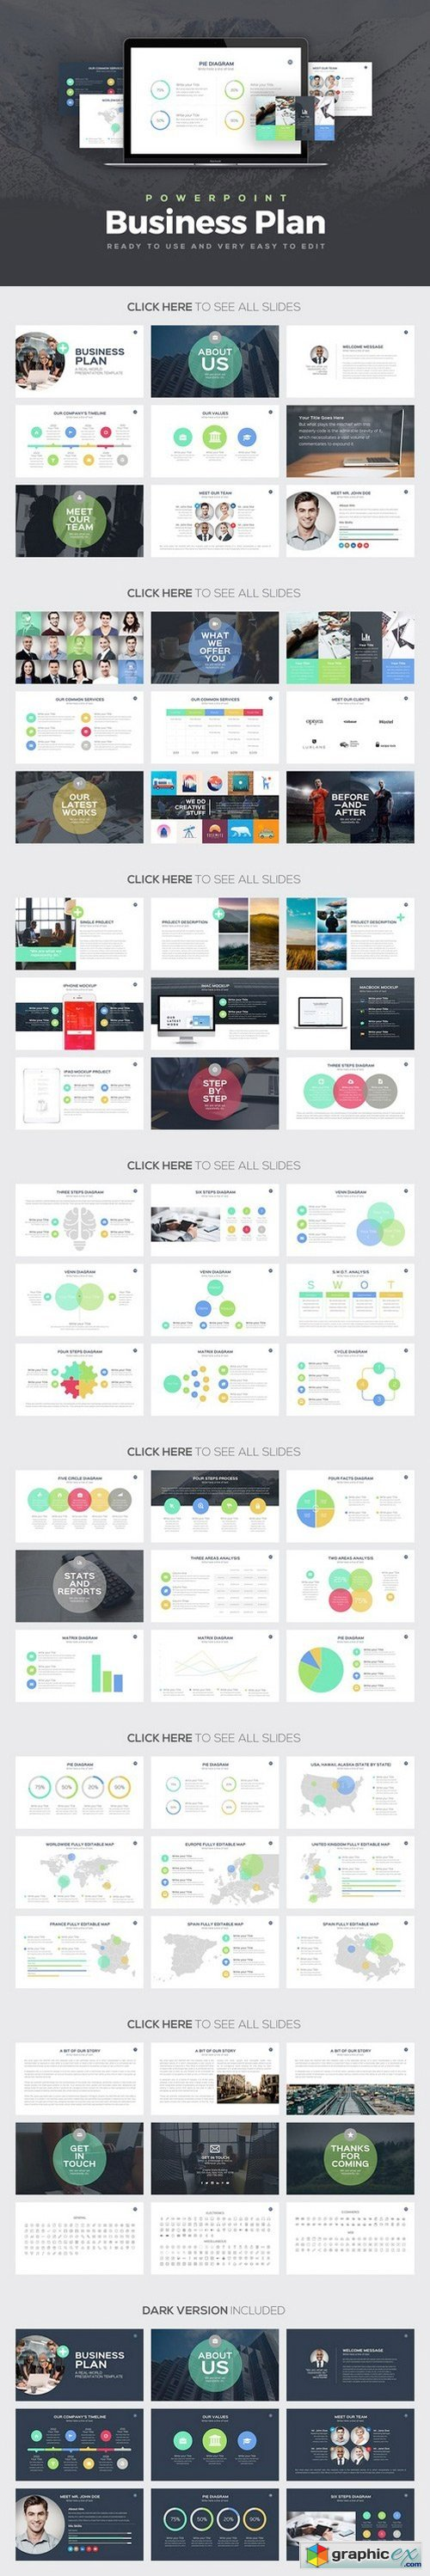 Business Plan Powerpoint Template 546655 Free Download Vector